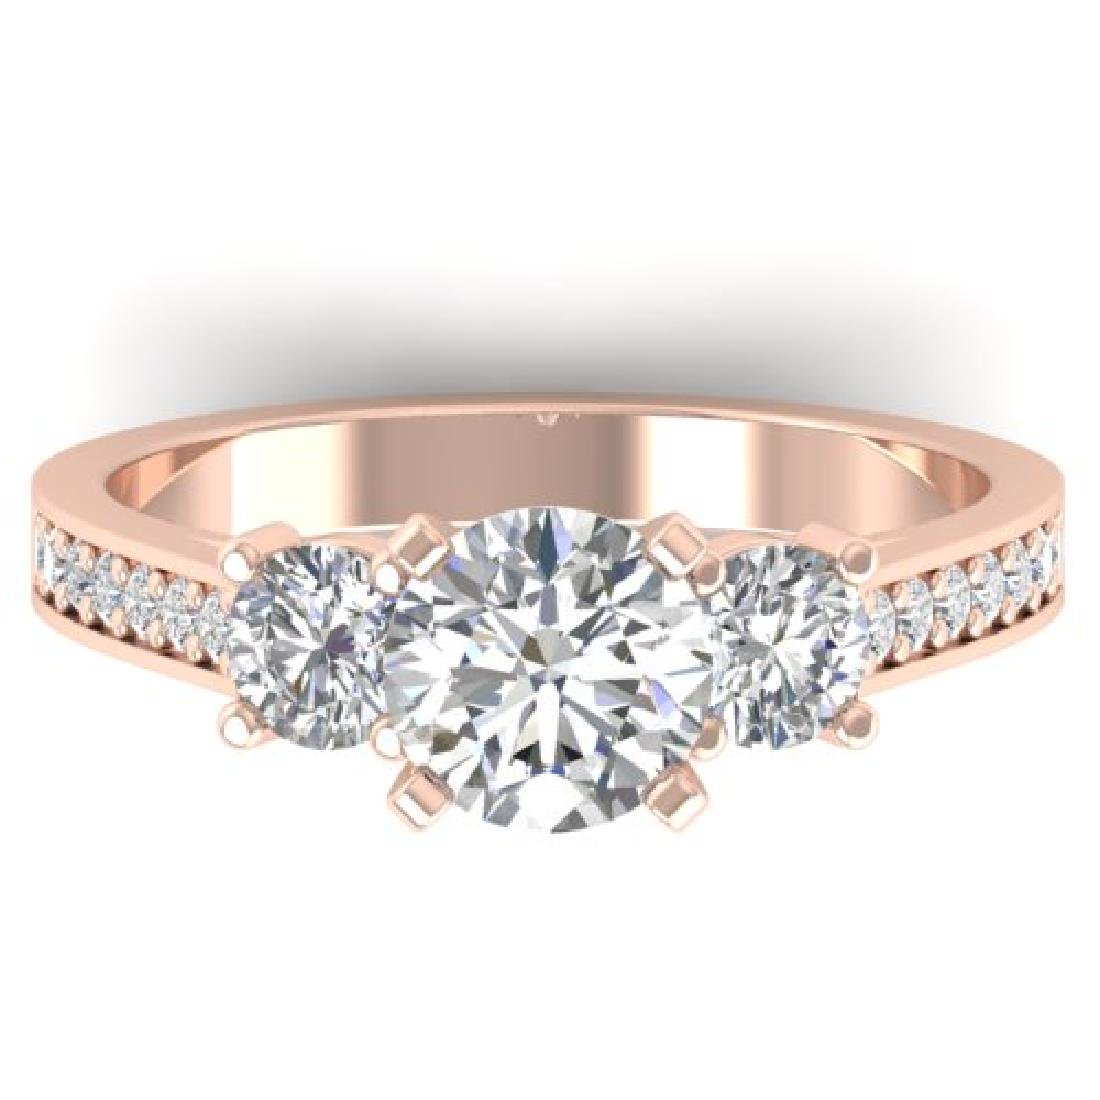 1.75 CTW Certified VS/SI Diamond 3 Stone Ring 18K Rose